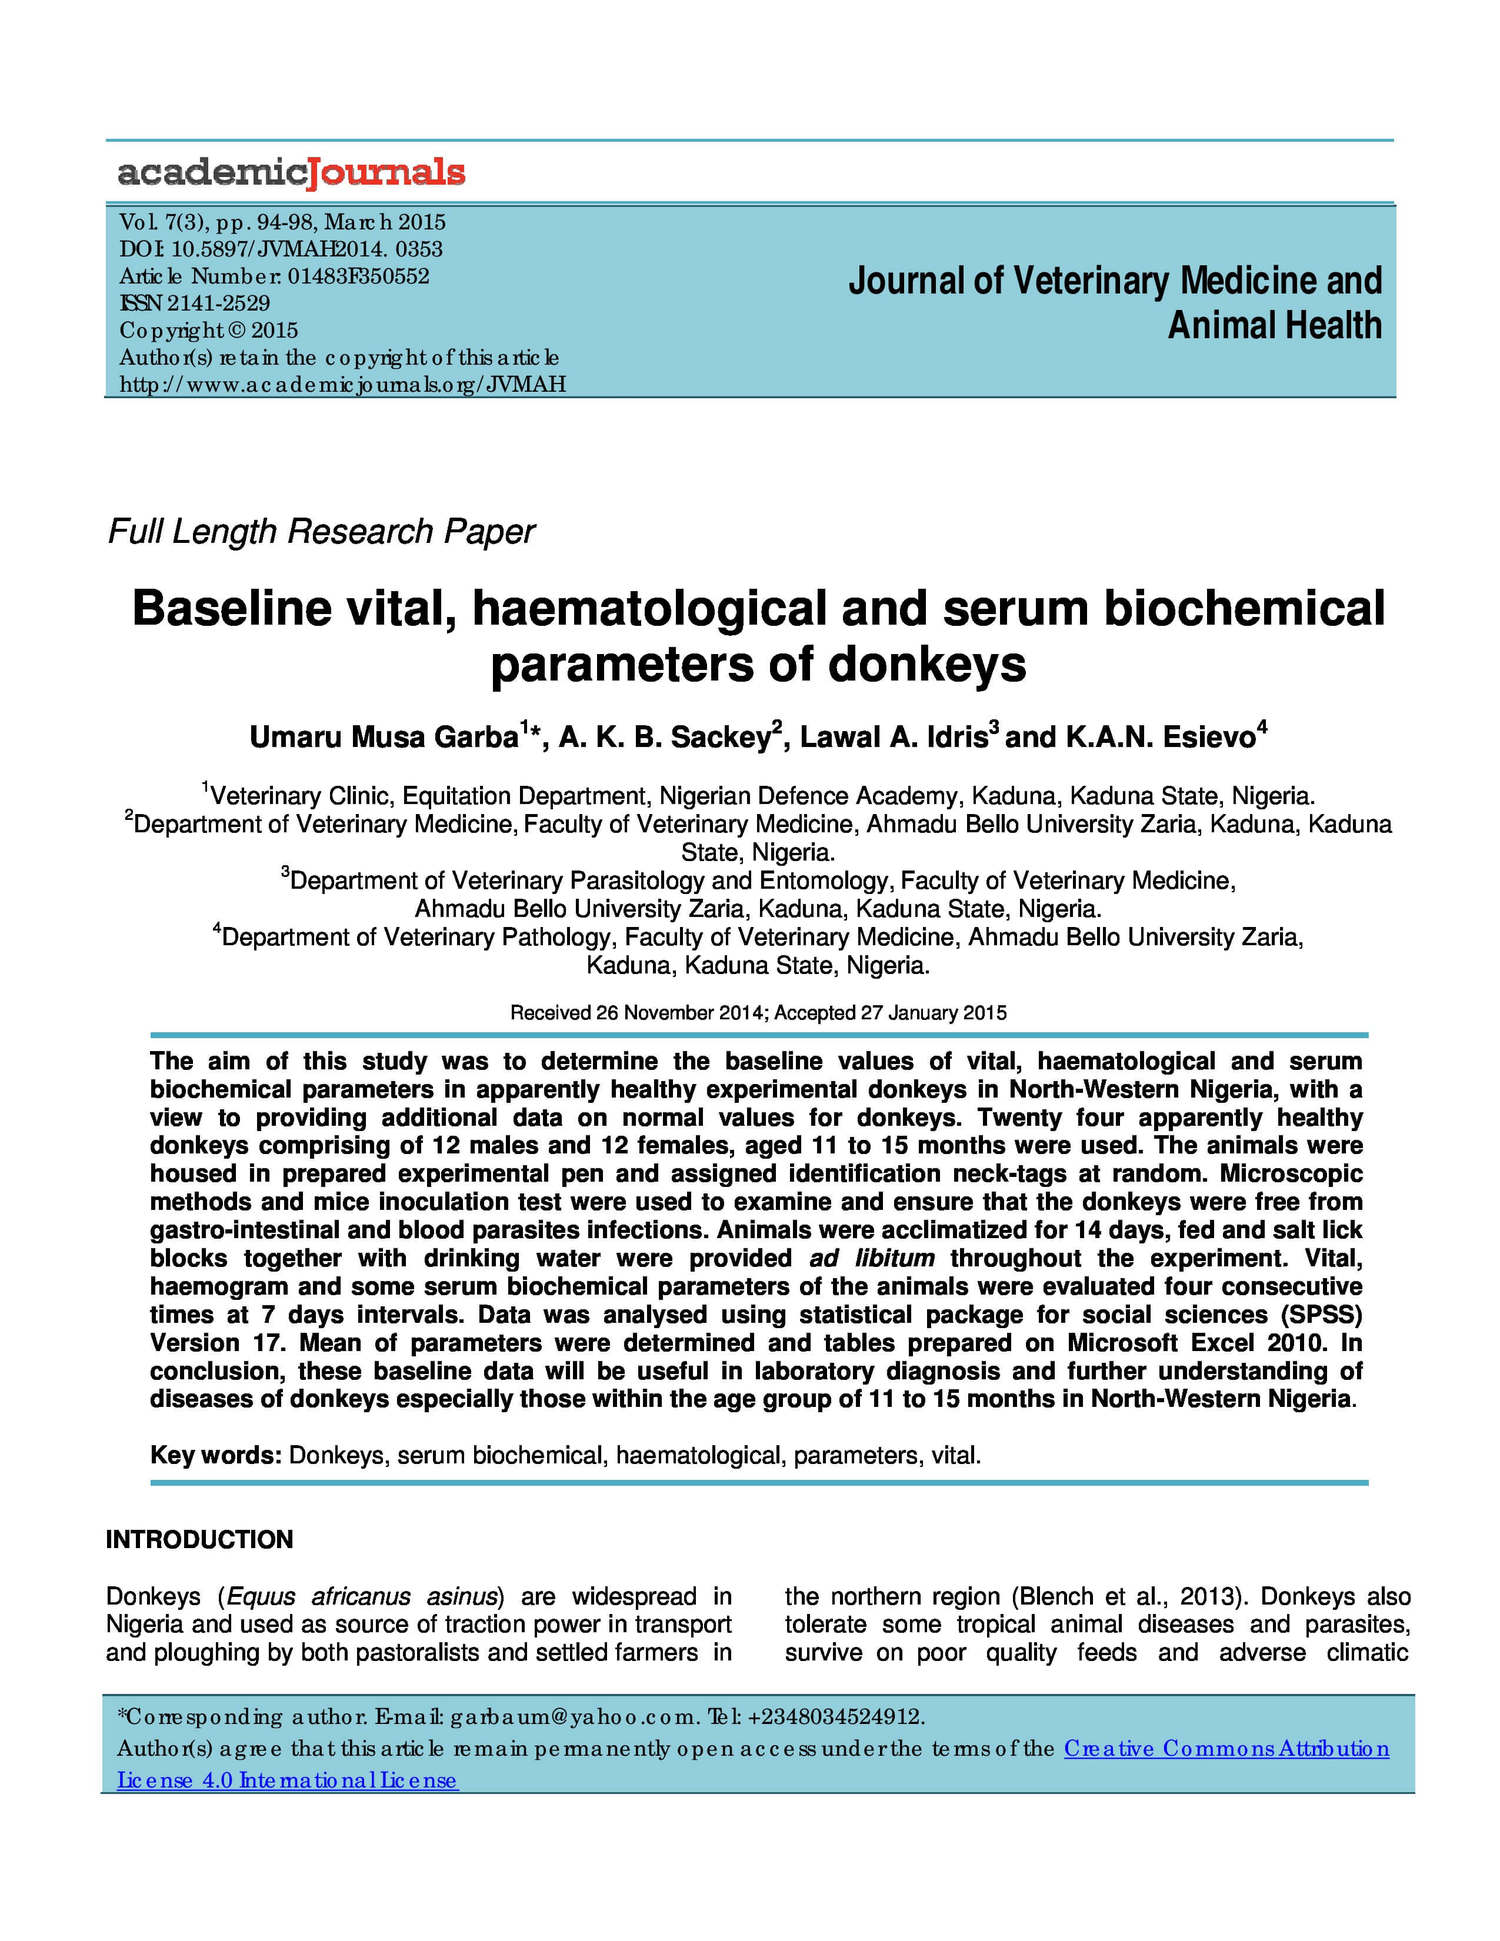 Baseline vital, haematological and serum biochemical